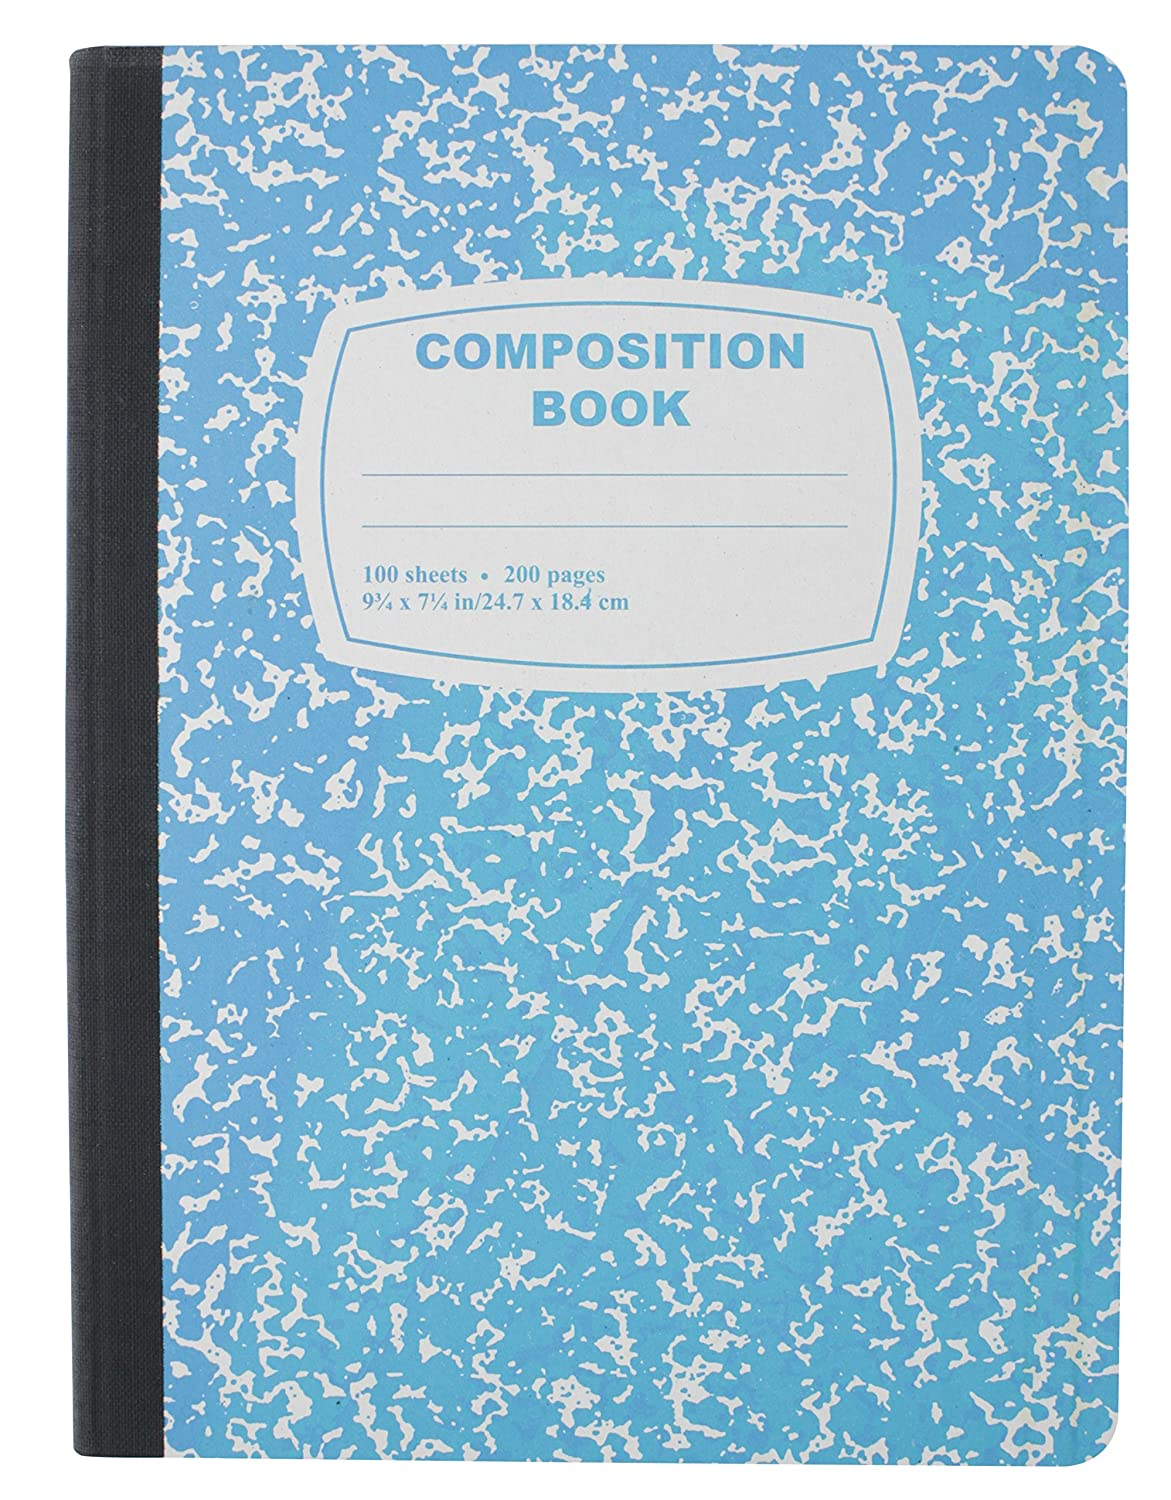 8 Pack Emraw Dark//Neon Colors Cover Composition Book with 100 Sheets of Wide Ruled White Paper